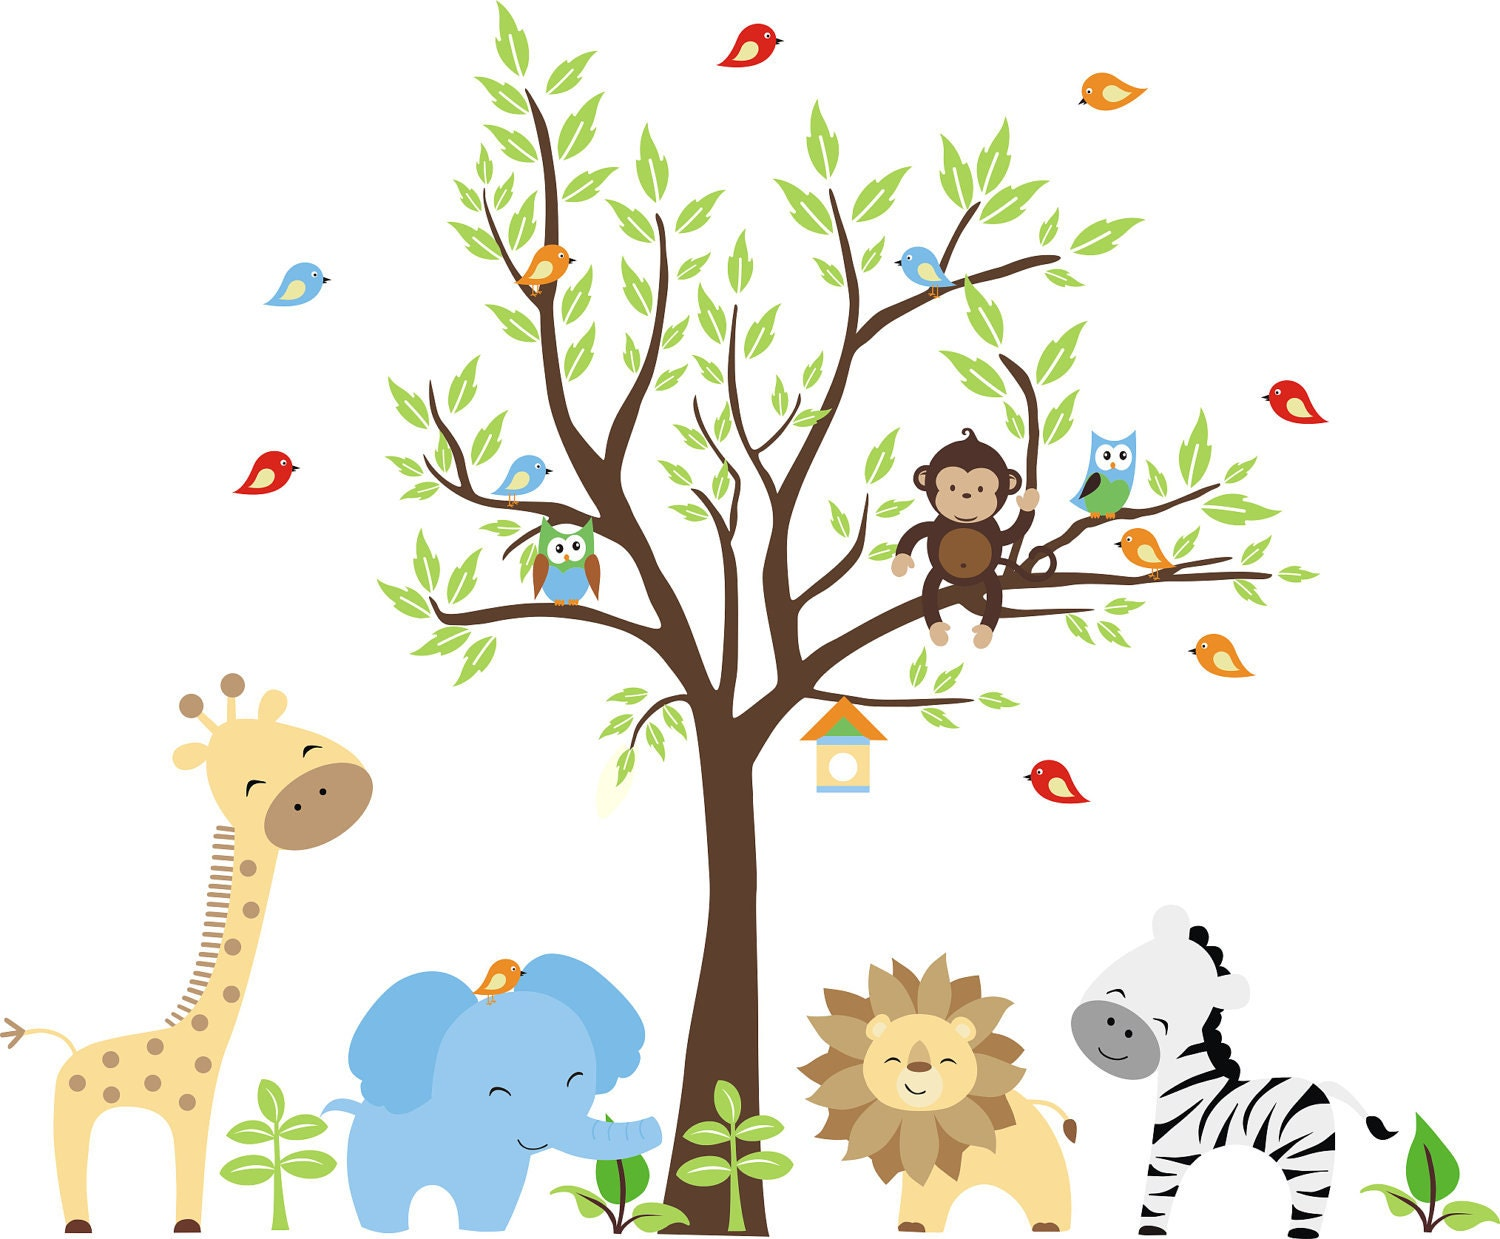 Wall Art Stickers Jungle : Baby wall decals nursery by stickemupwallart